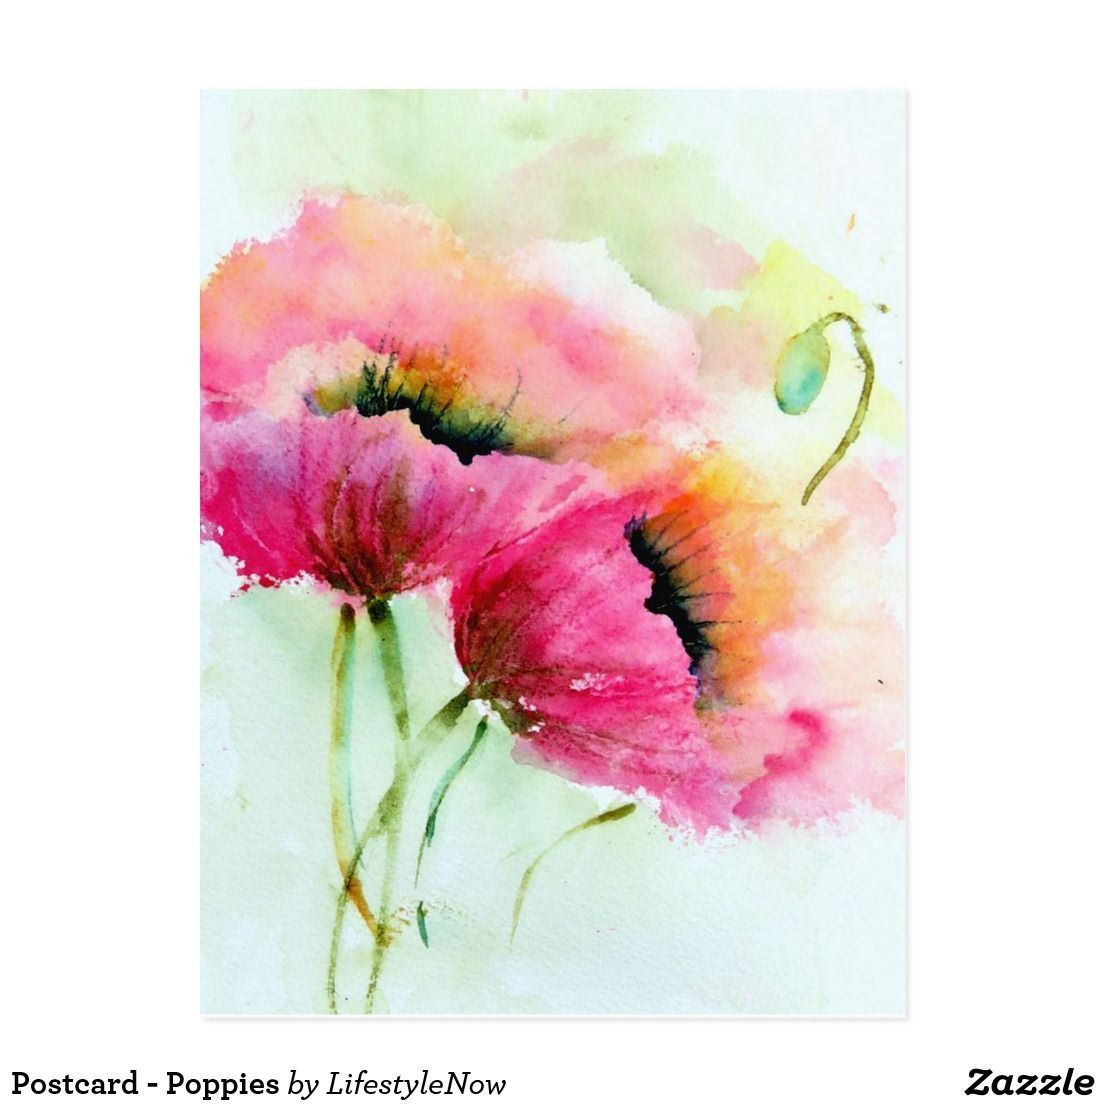 Postcard Poppies In 2020 Flower Painting Watercolor Flower Art